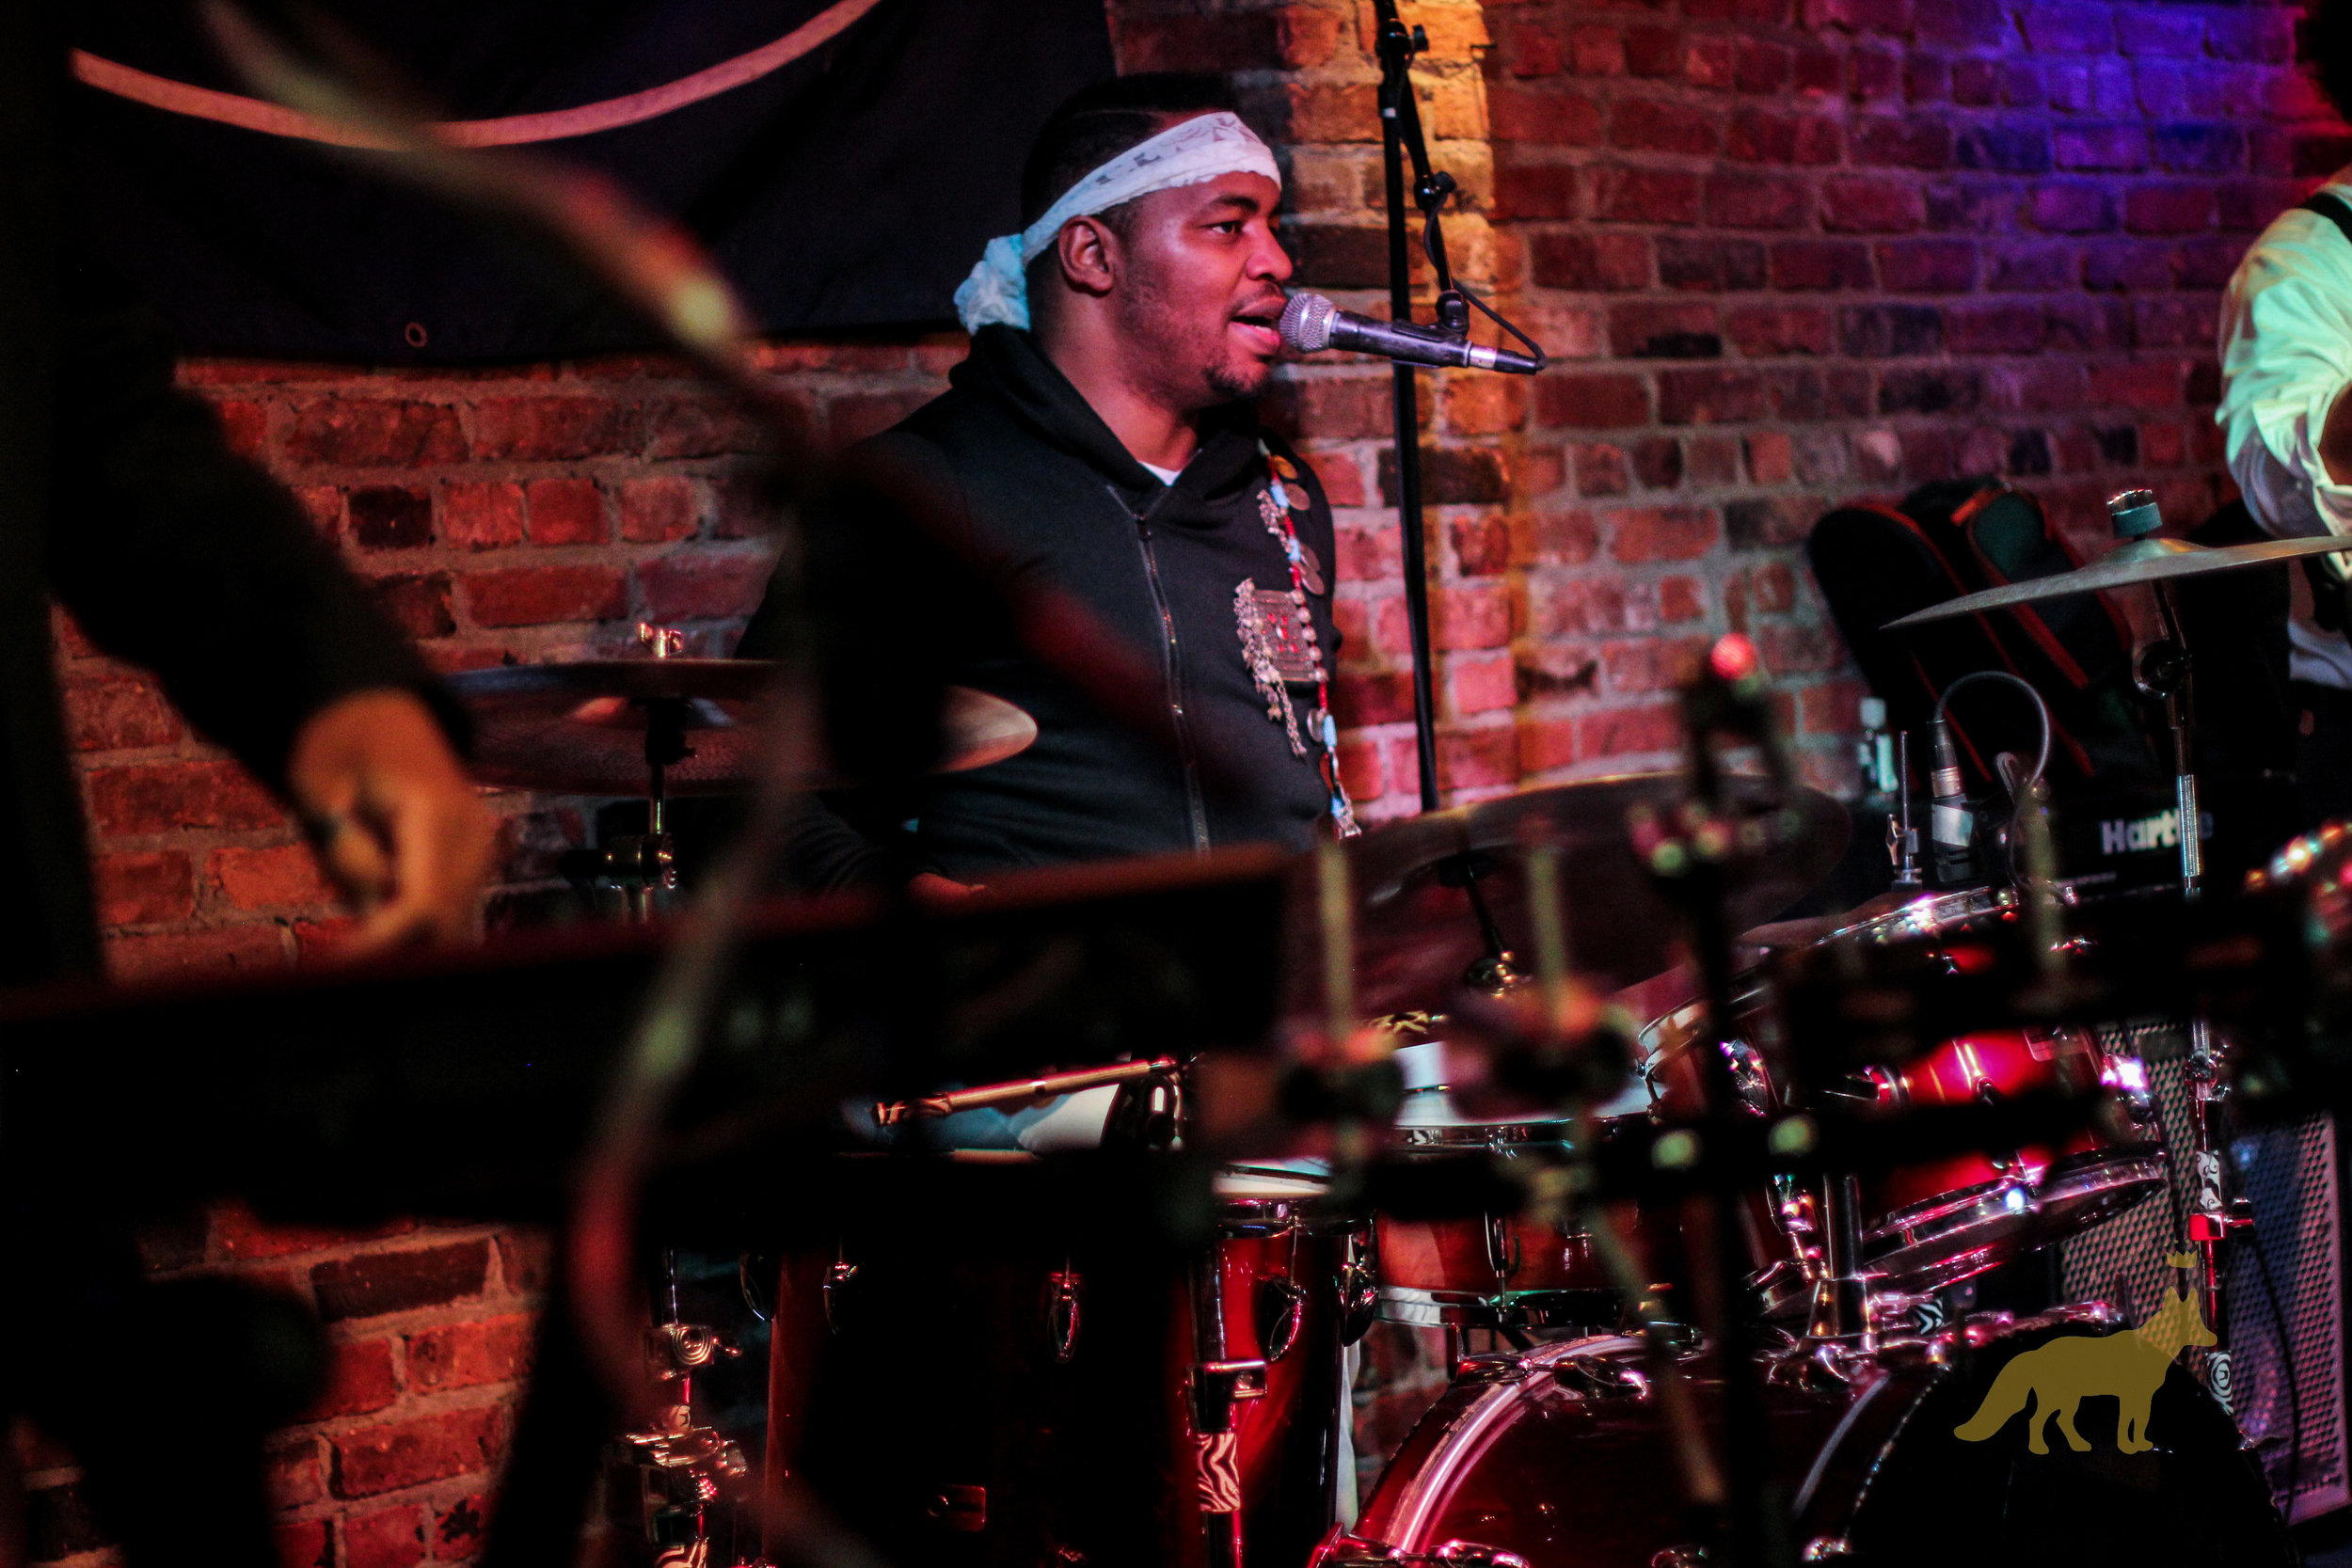 Lou Hill getting down on the drums at The Bitter End. Photo courtesy of Kevin Vallejos.